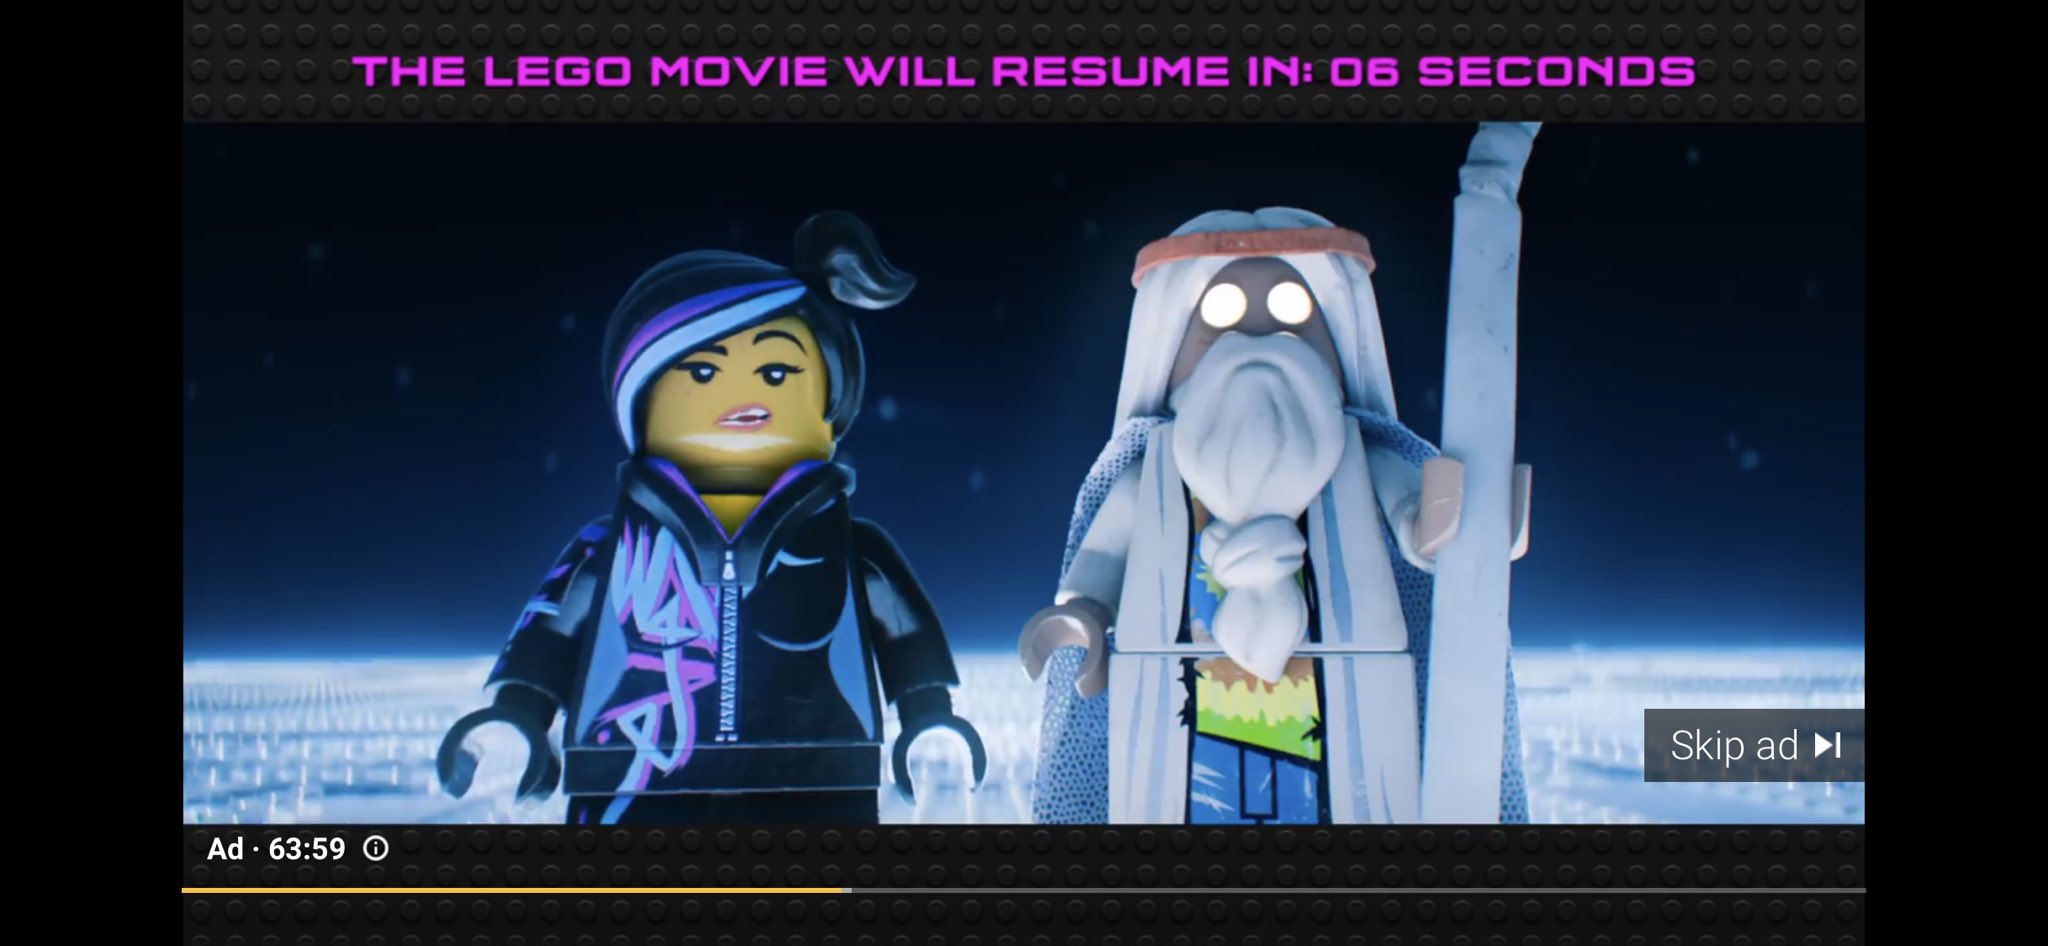 James Montagna Pa Twitter The Youtube Ad For Lego Movie 2 Is Literally The Entire First Legomovie And I Watched The Whole Thing Tbh Brilliant Https T Co Llbbpgpwsw